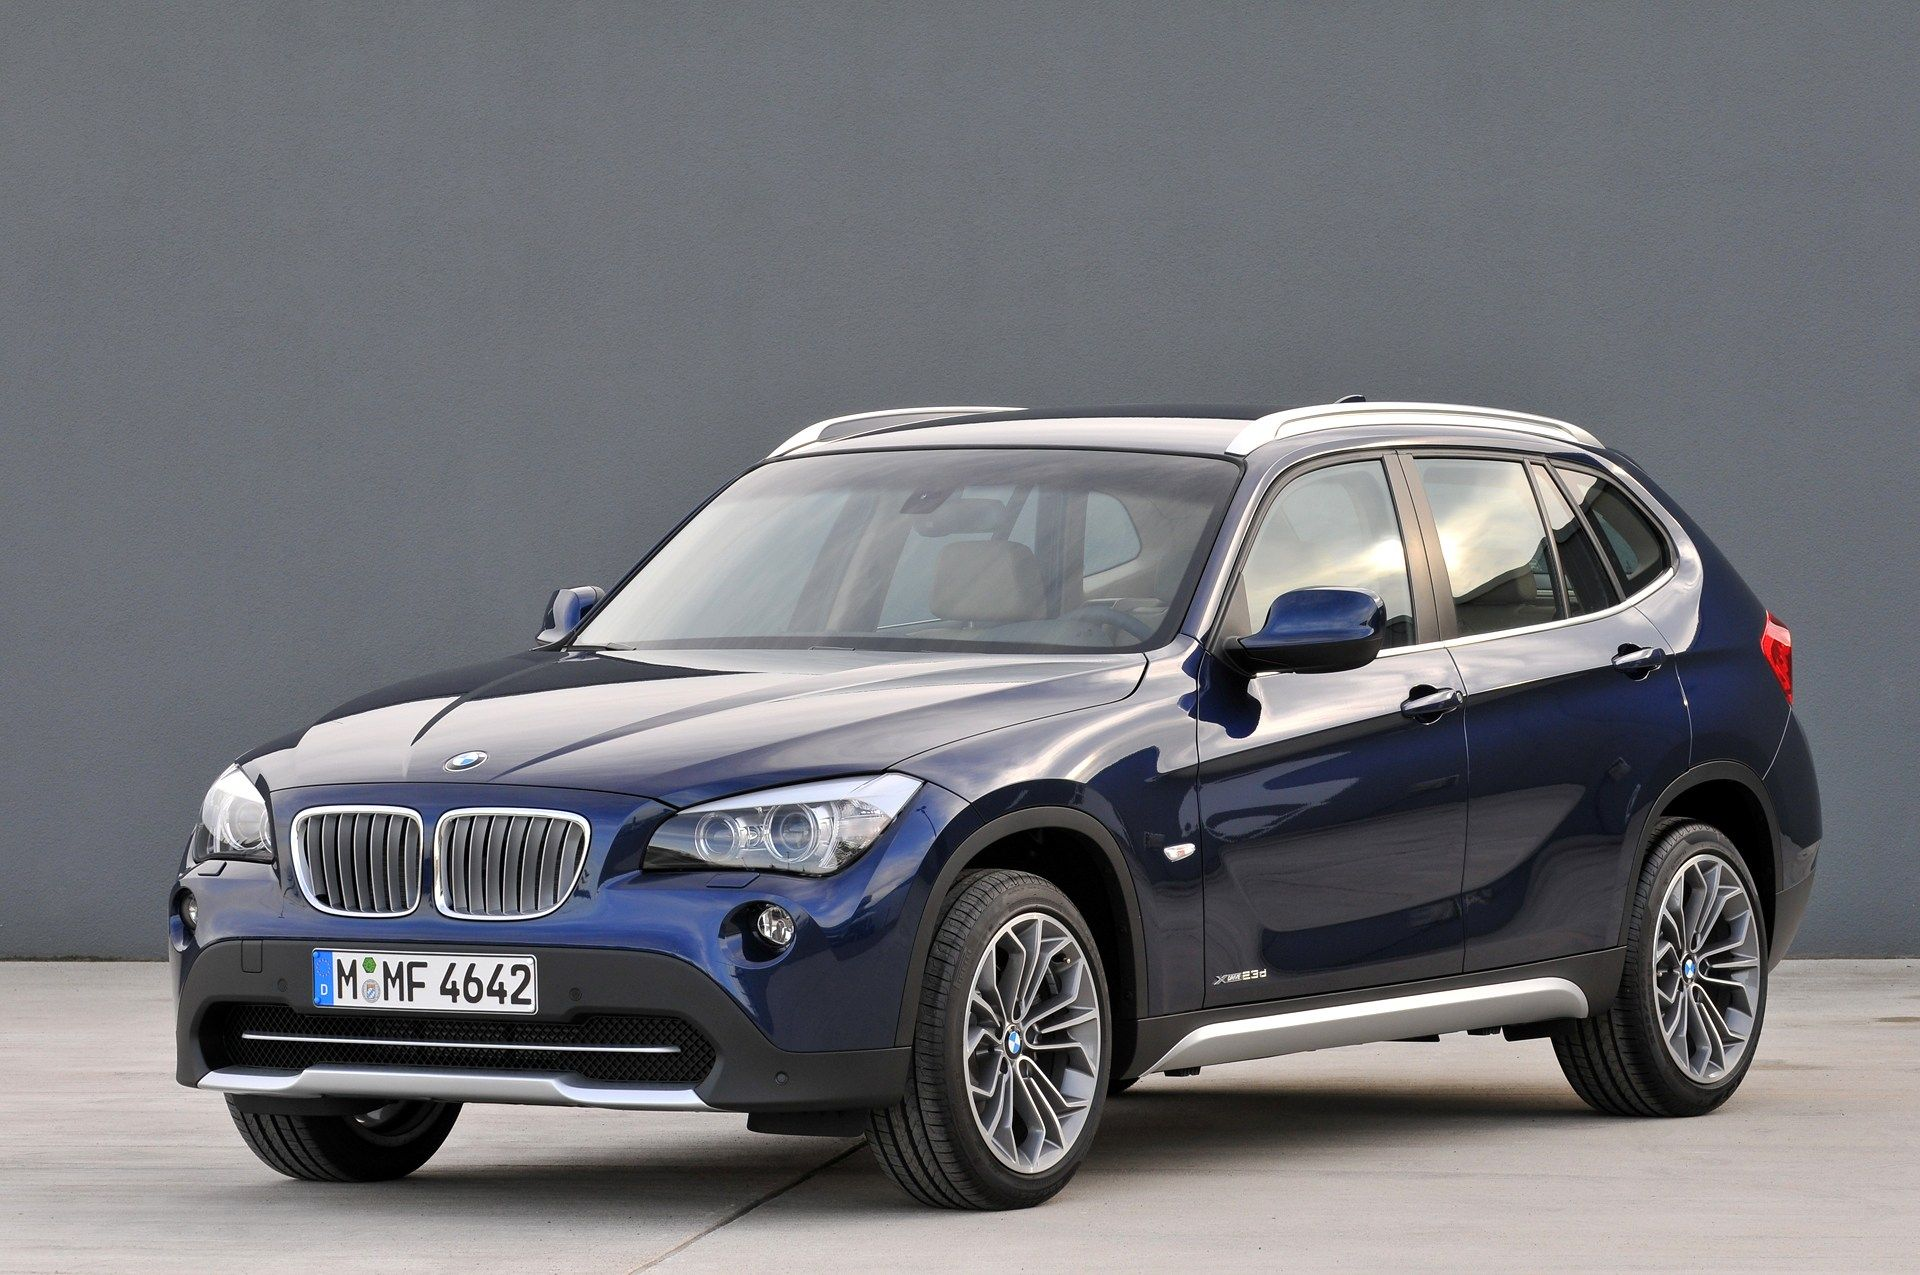 Bmw X1 Amazing Pictures Video To Bmw X1 Cars In India Bmw